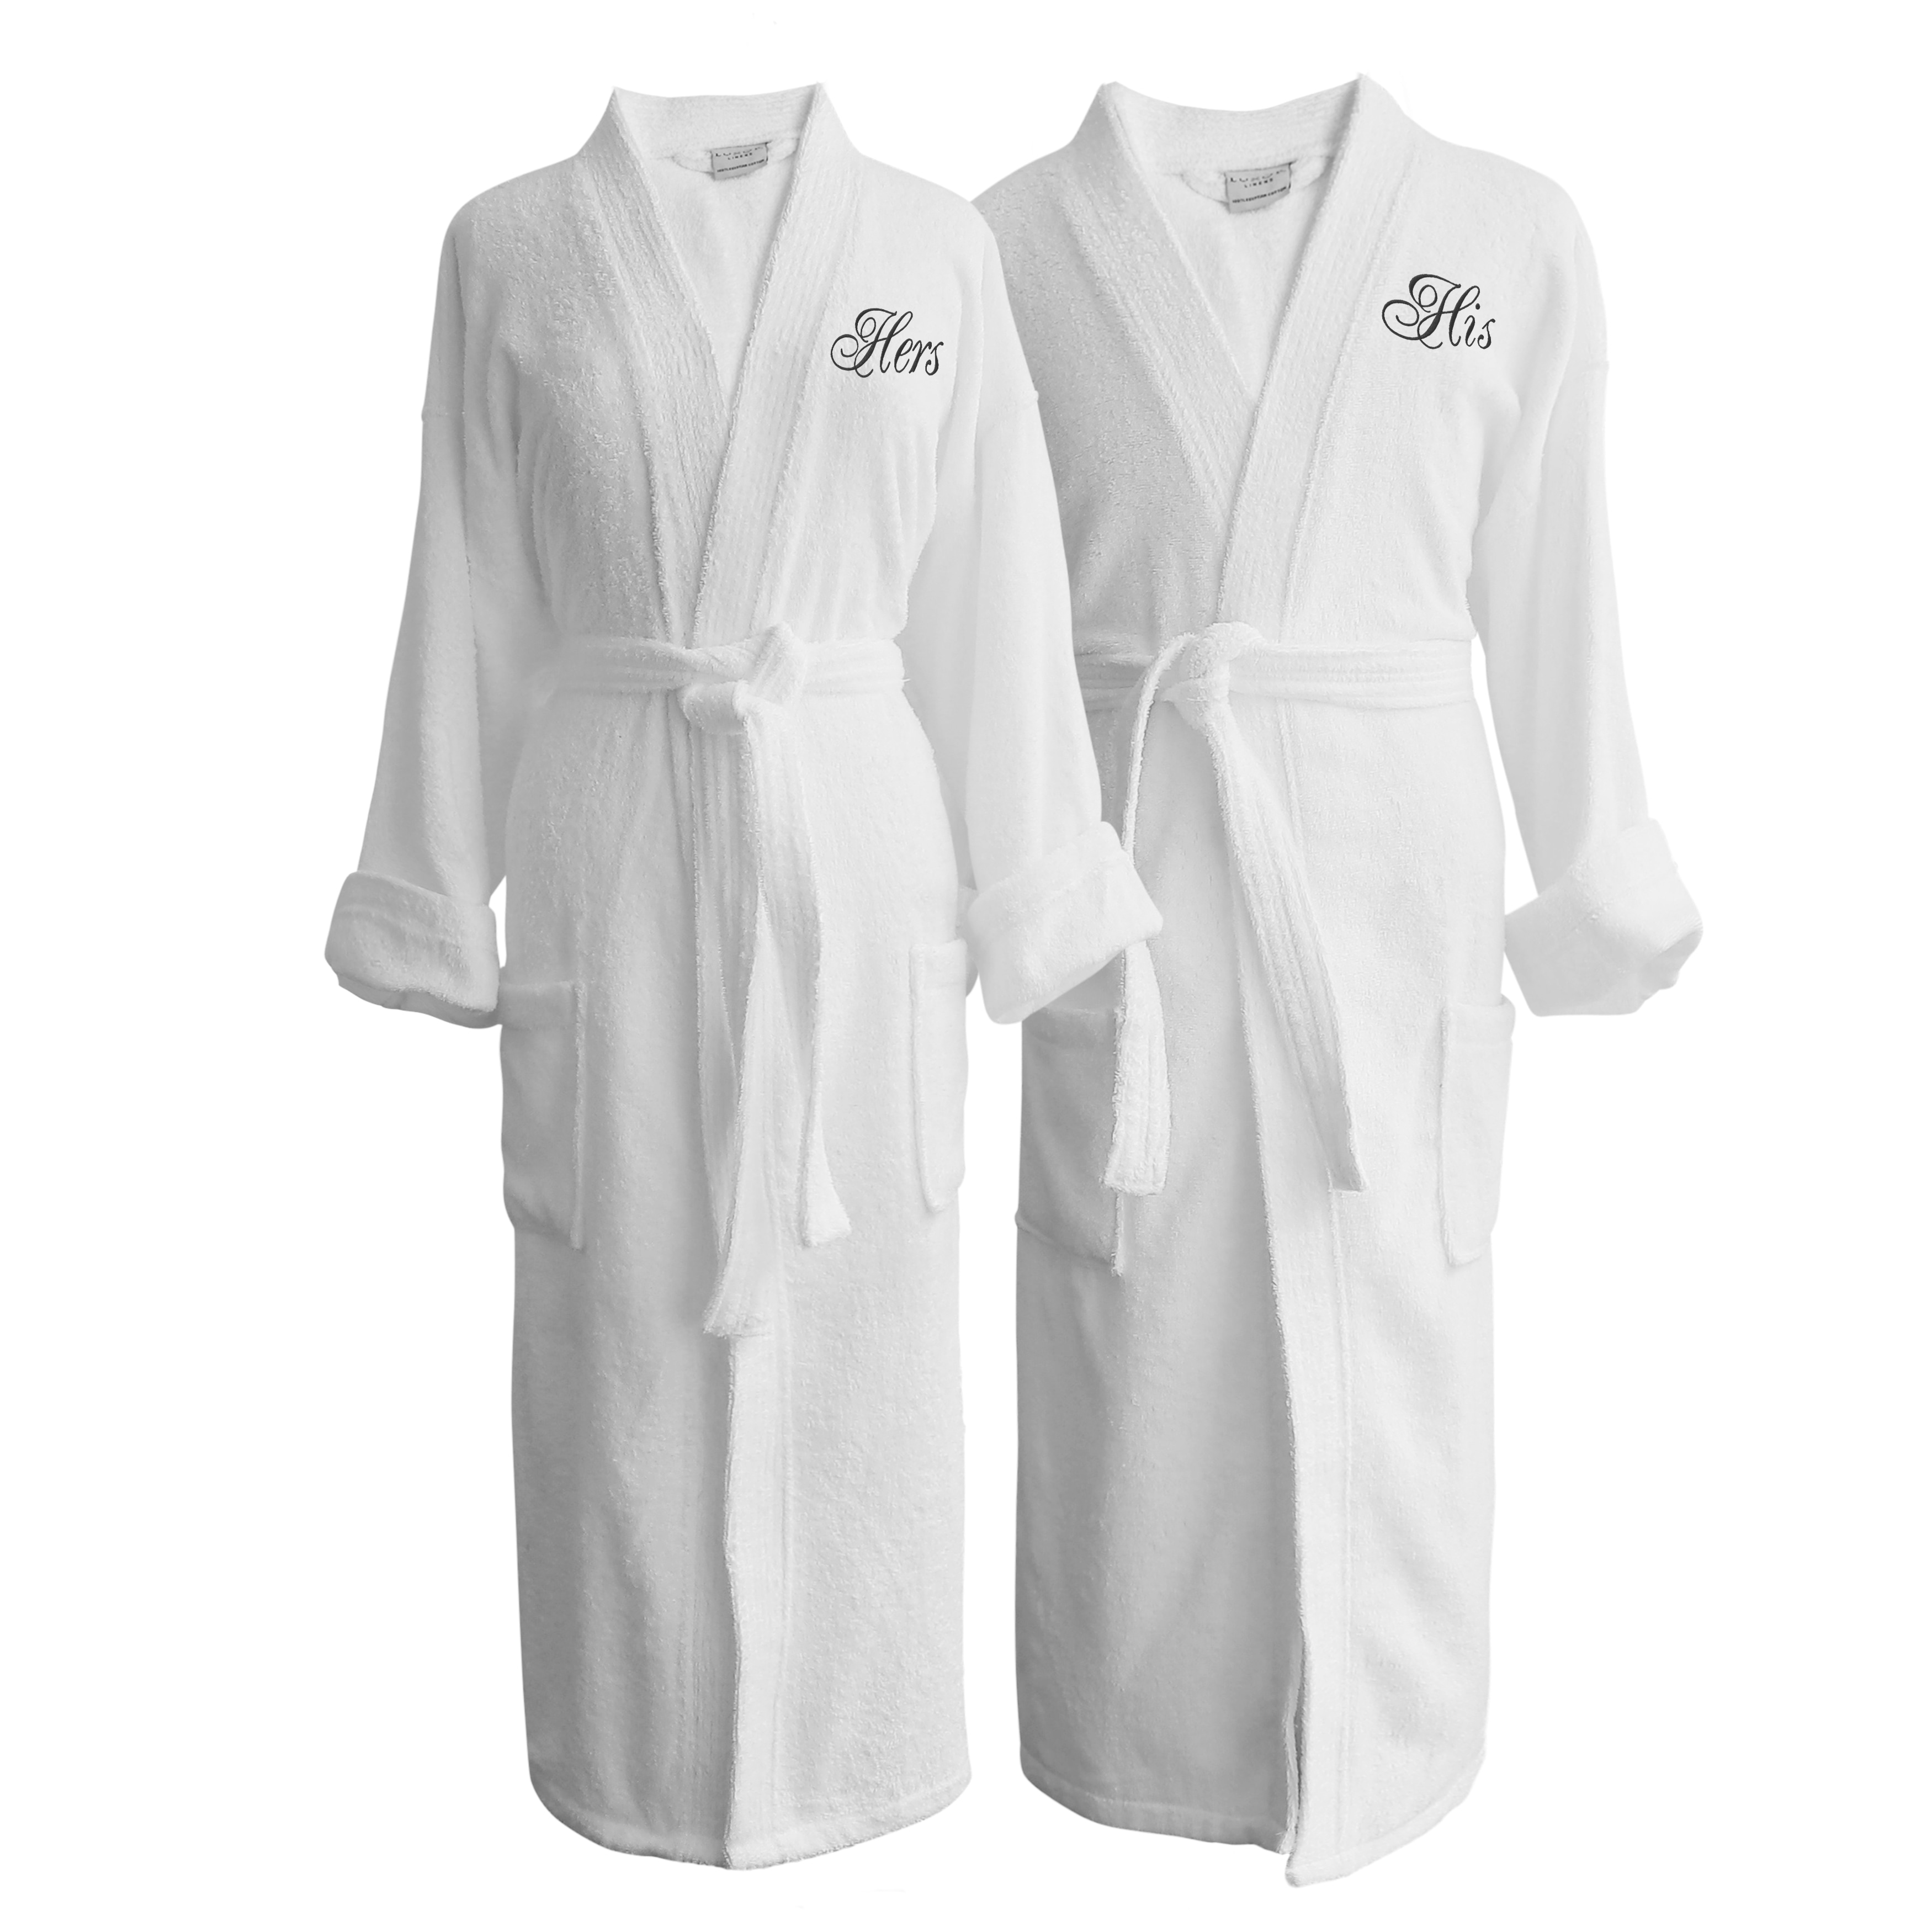 8feea5a3cc Wyndham Egyptian Cotton His and Hers Terry Spa Robe Set (Gift Packaging)